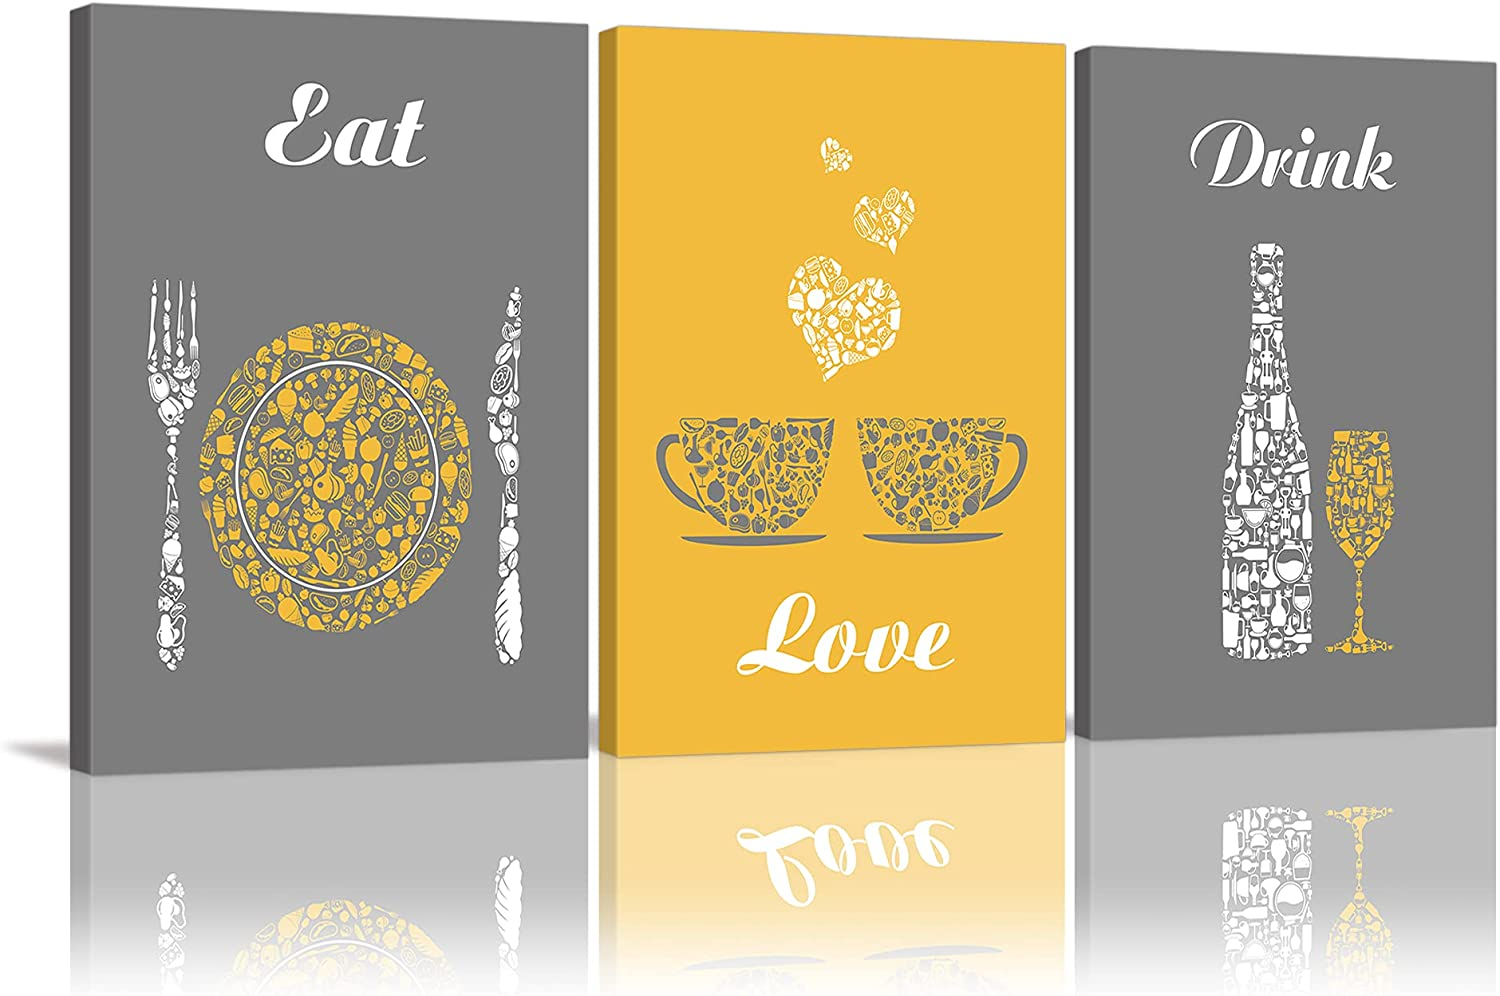 Yellow and Grey Modern Kitchen and Dining Room Wall Art Decor Abstract EAT DRINK LOVE Theme Canvas Prints for Coffee Bar Restaurant Cafe or Home Decoration Pictures Framed Ready to Hang, Set of 3